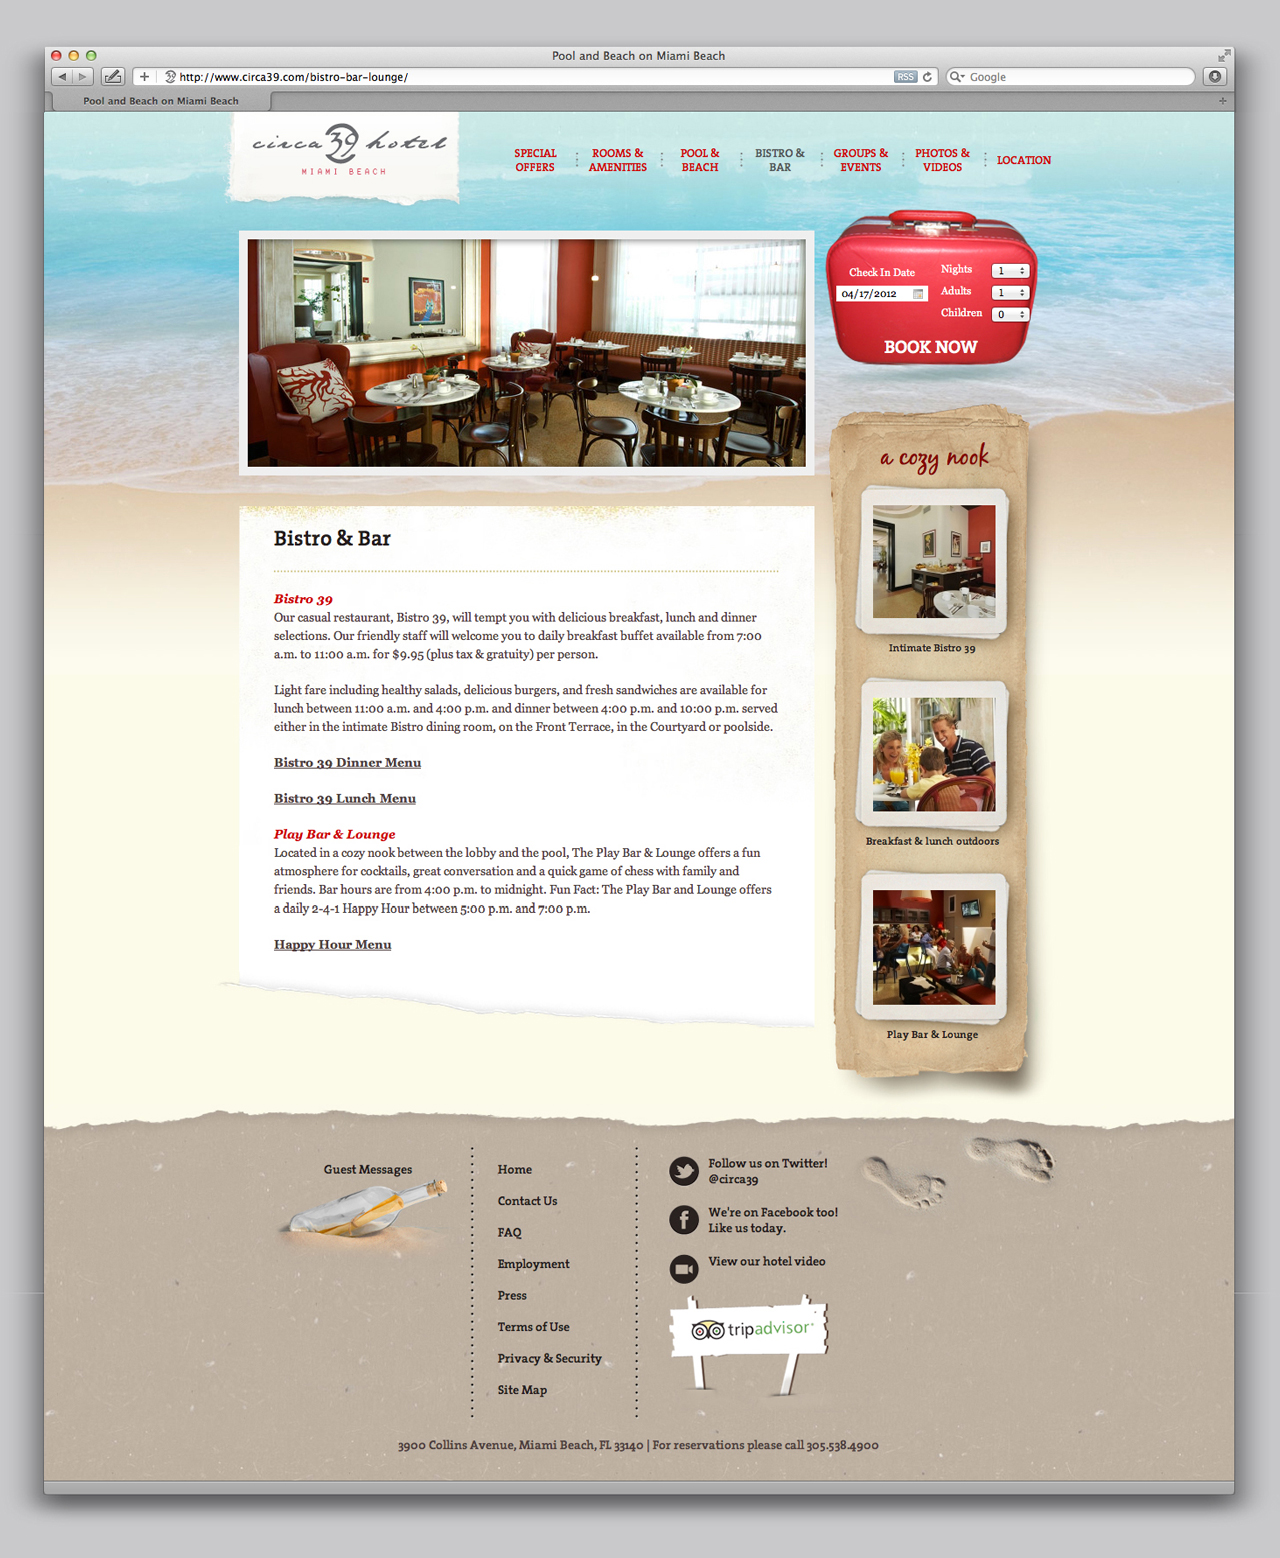 circa-39-hotel-website-design-by-camilo-rojas-3_o.jpg